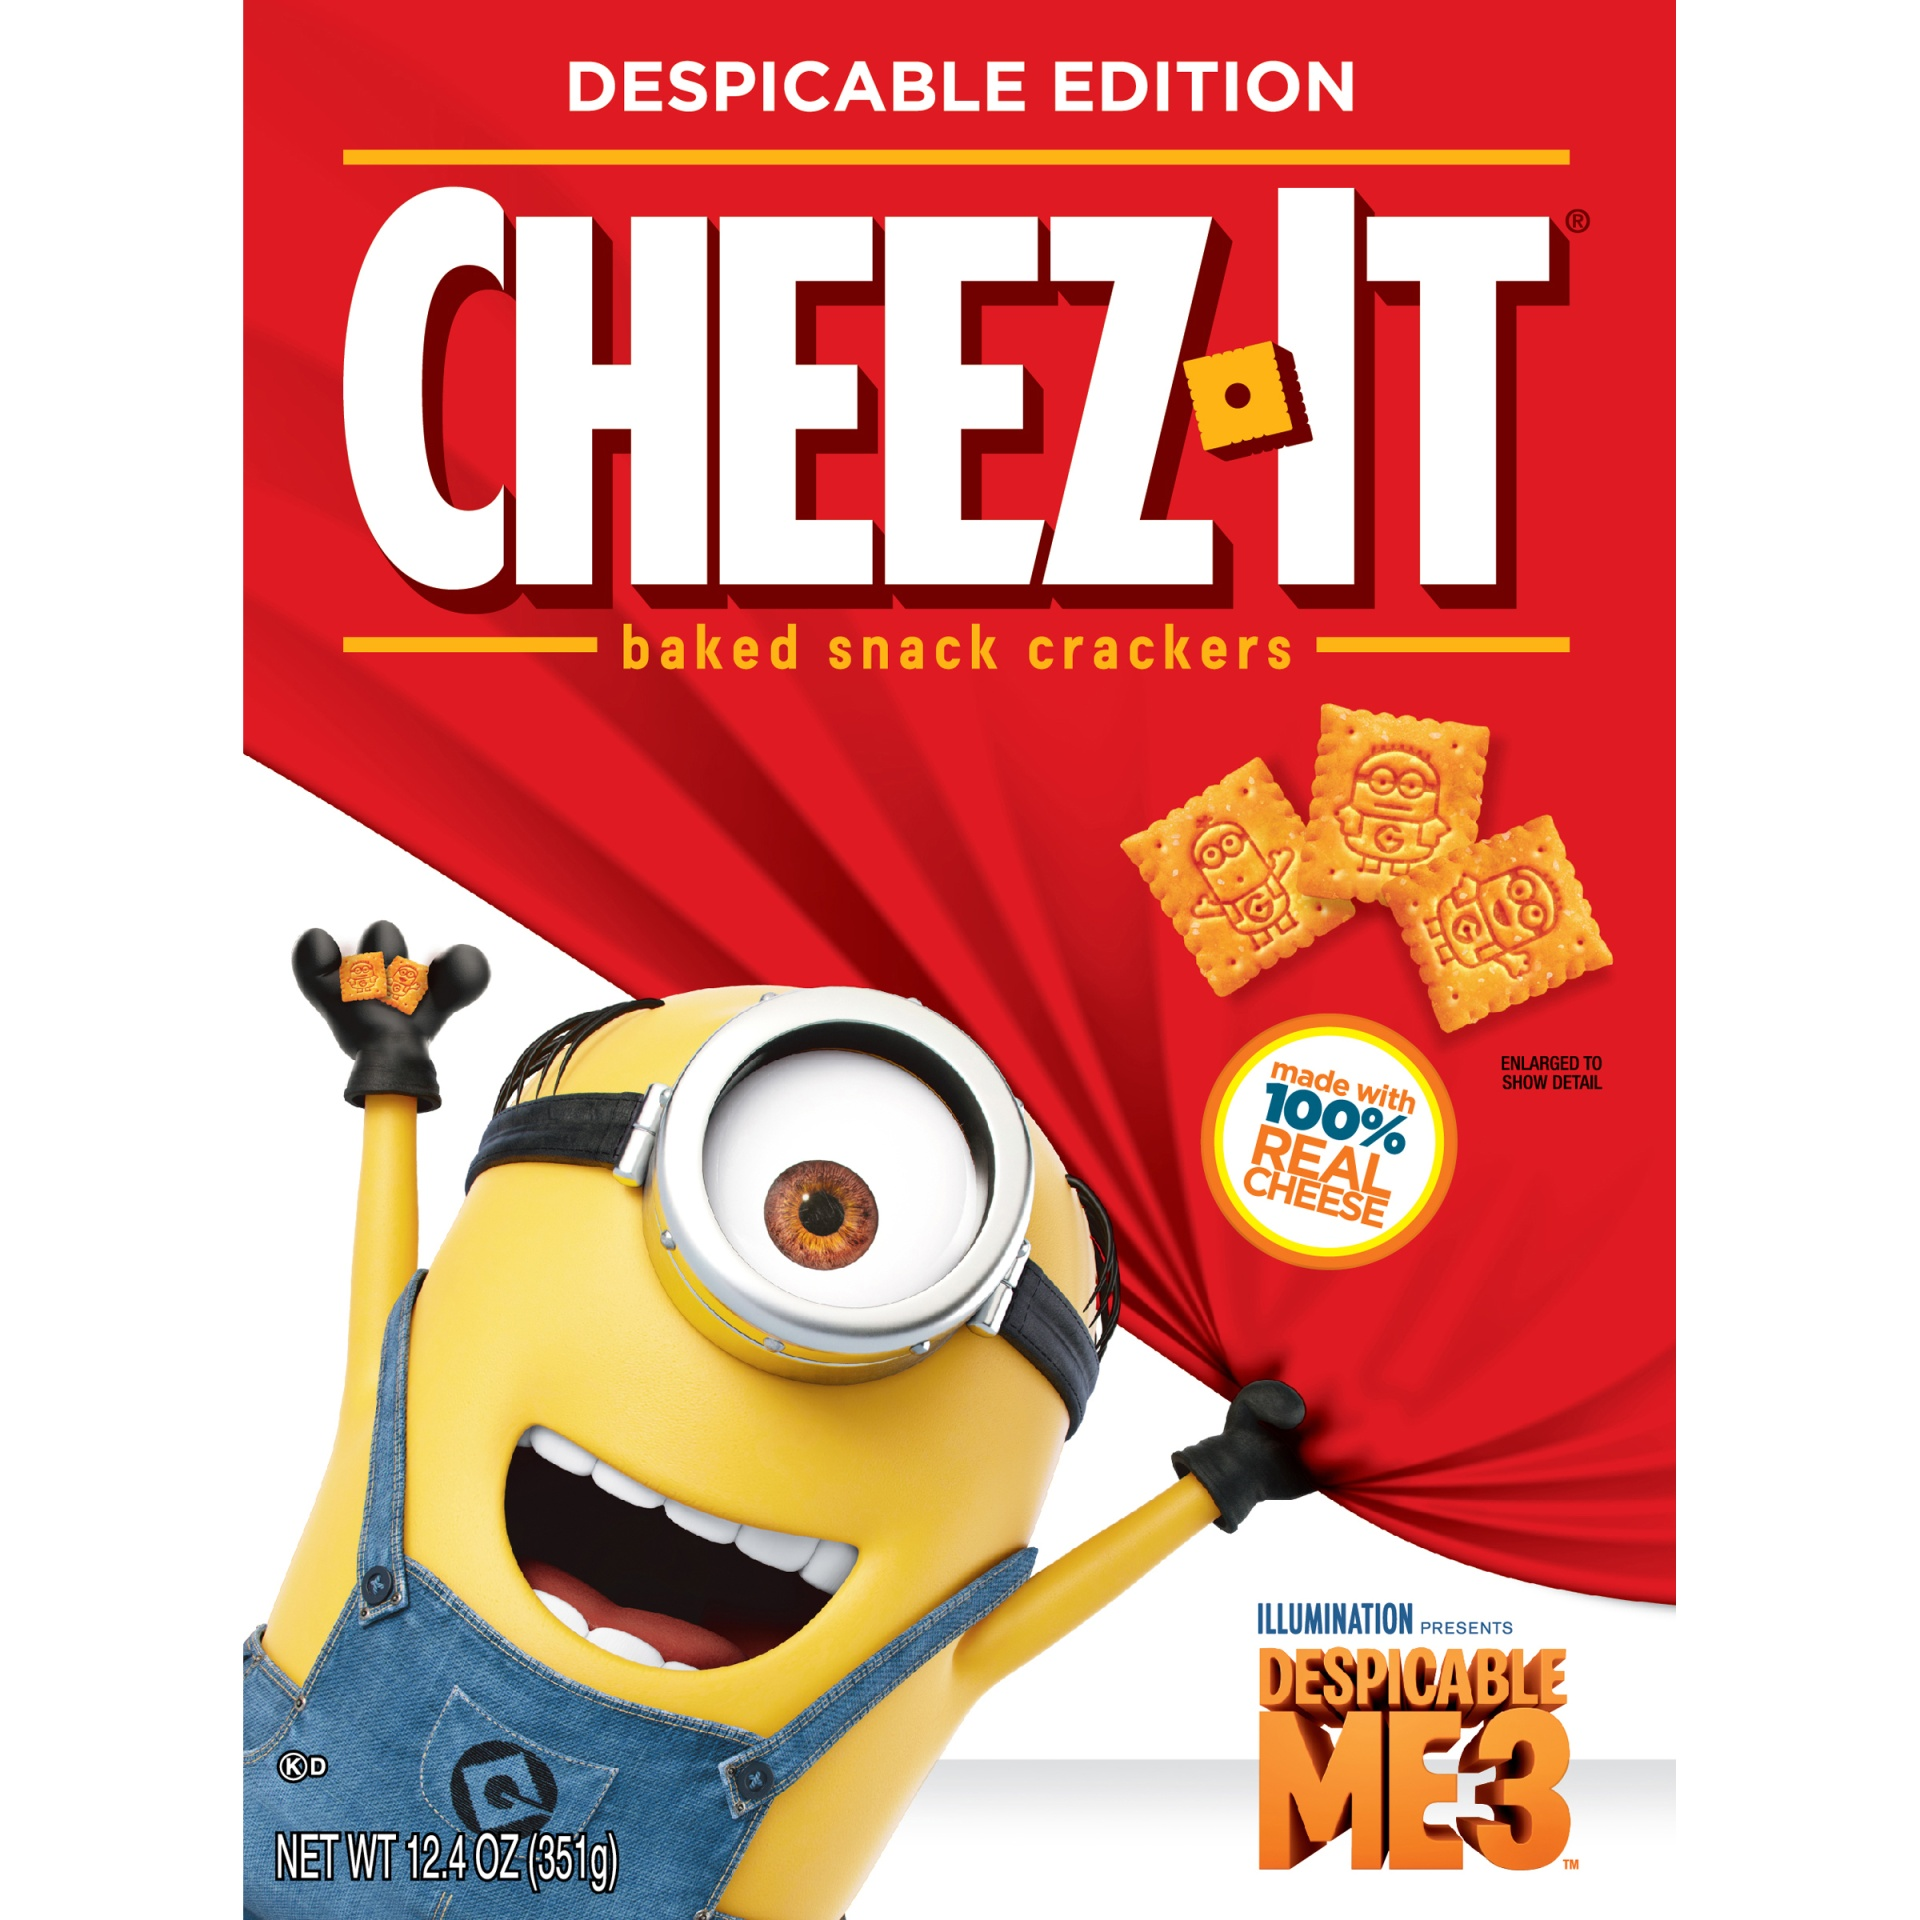 slide 6 of 8, Cheez-It Despicable Me 3 Baked Snack Crackers,